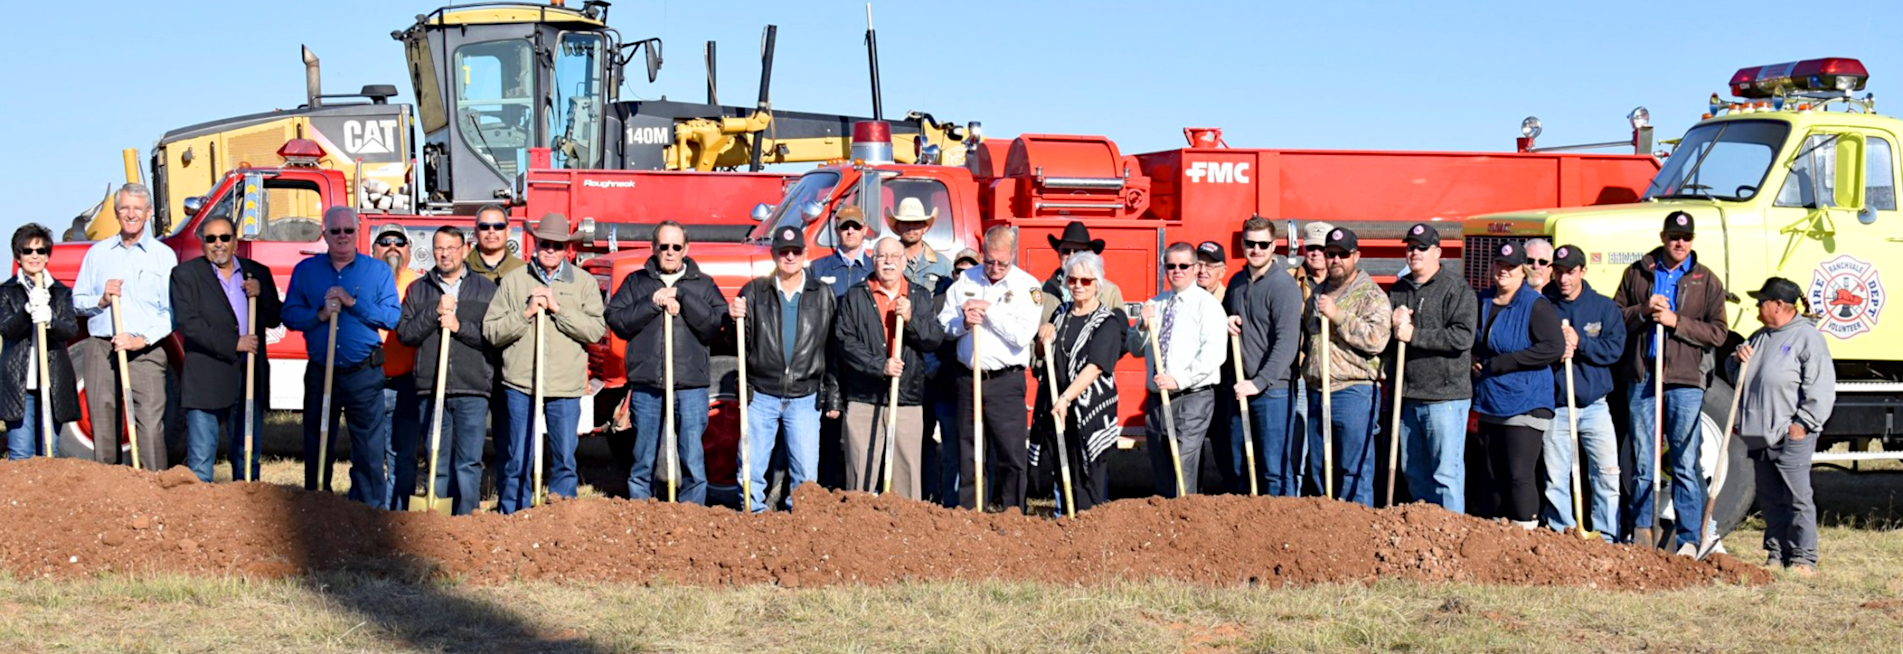 Ranchvale FD Groundbreaking